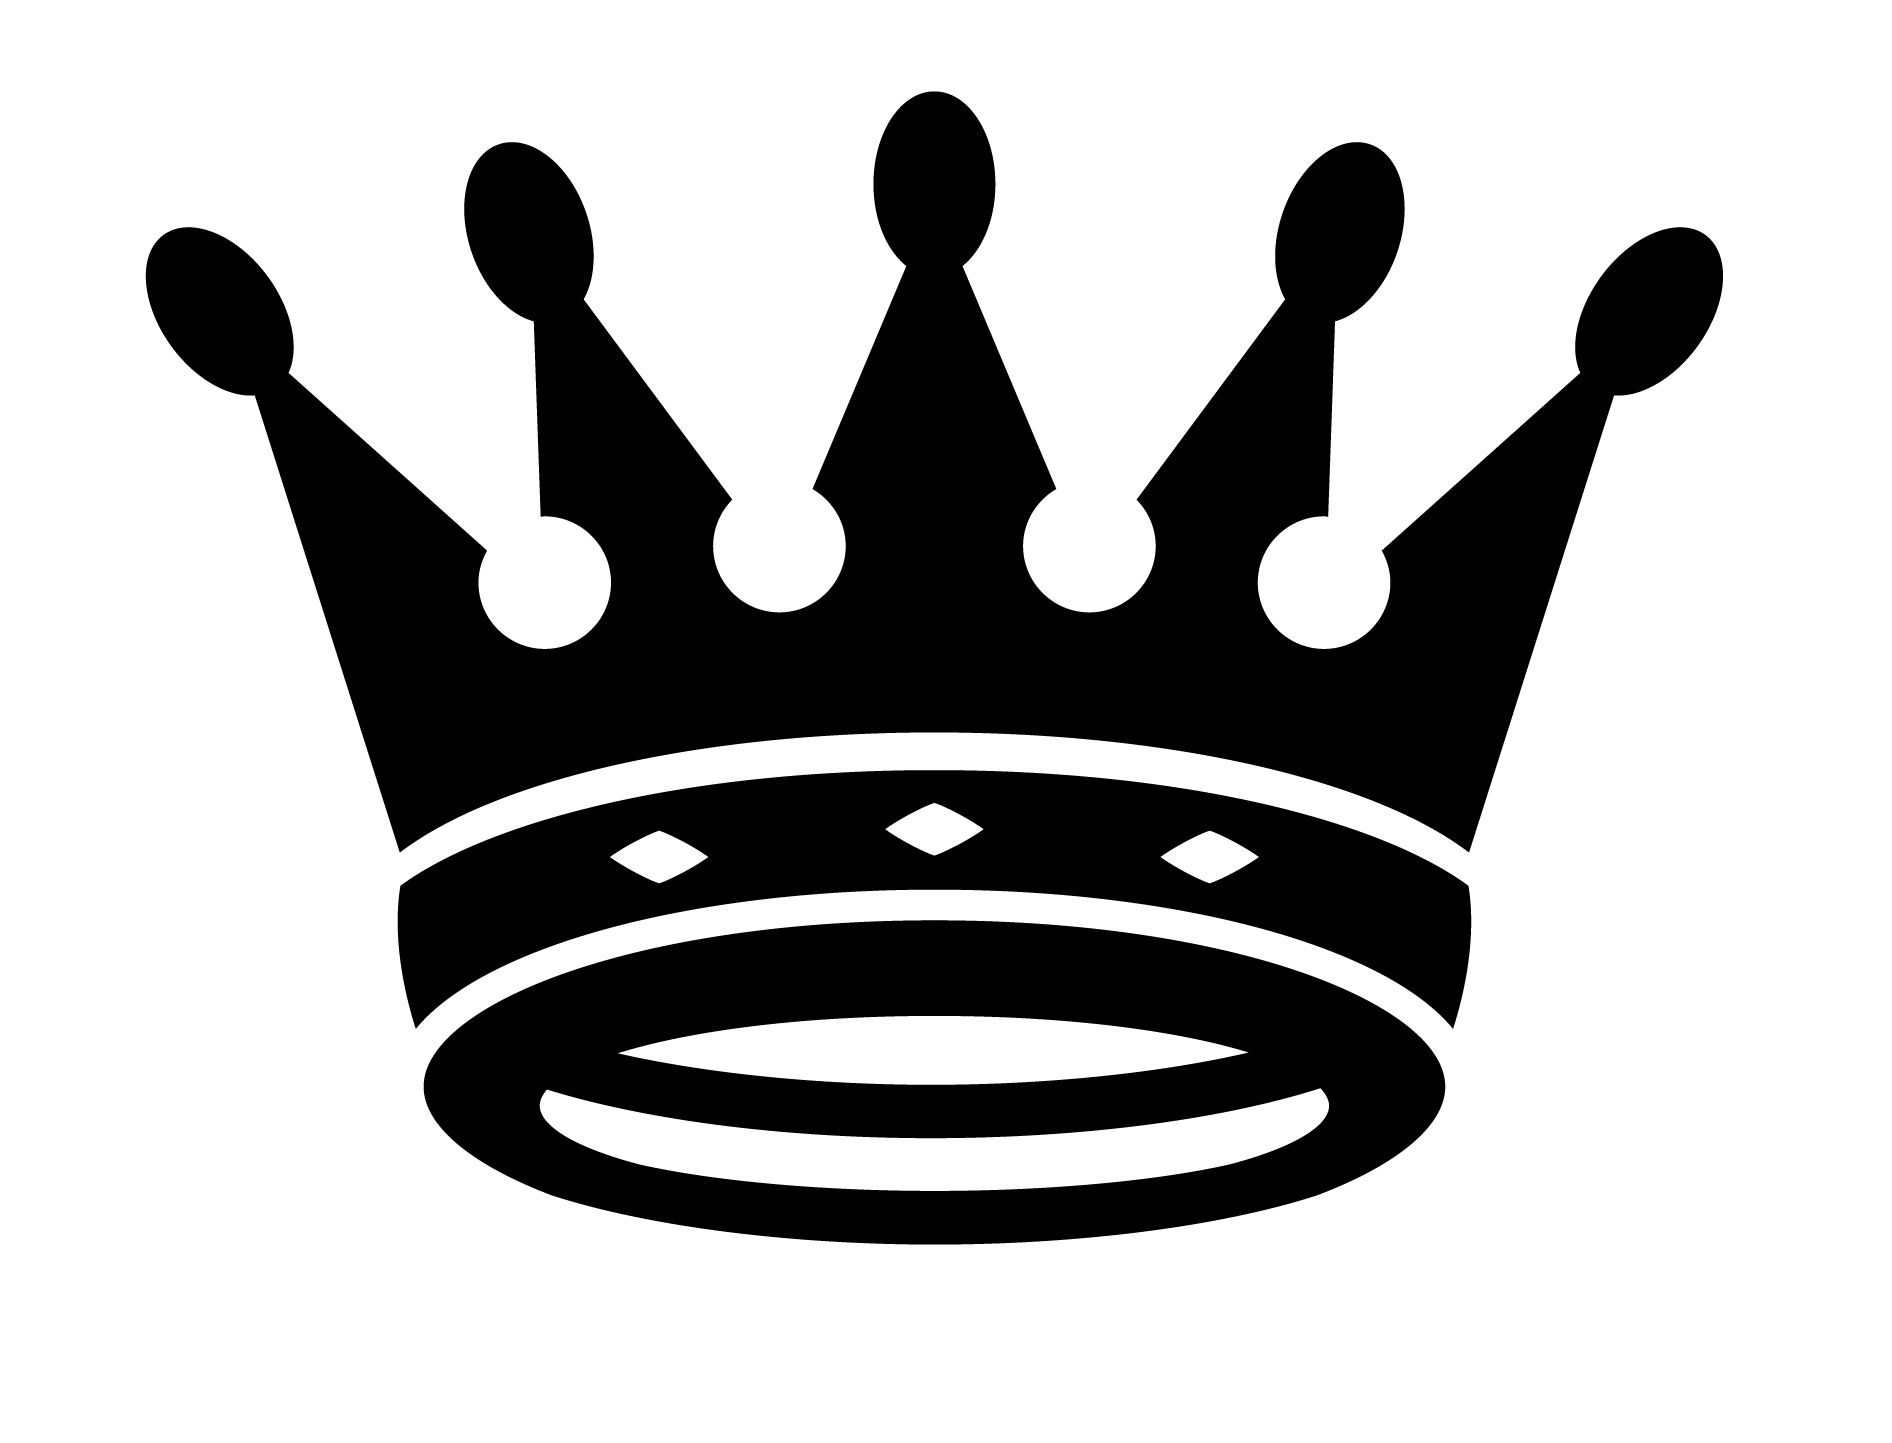 Crown clipart king's. Queen king and clip